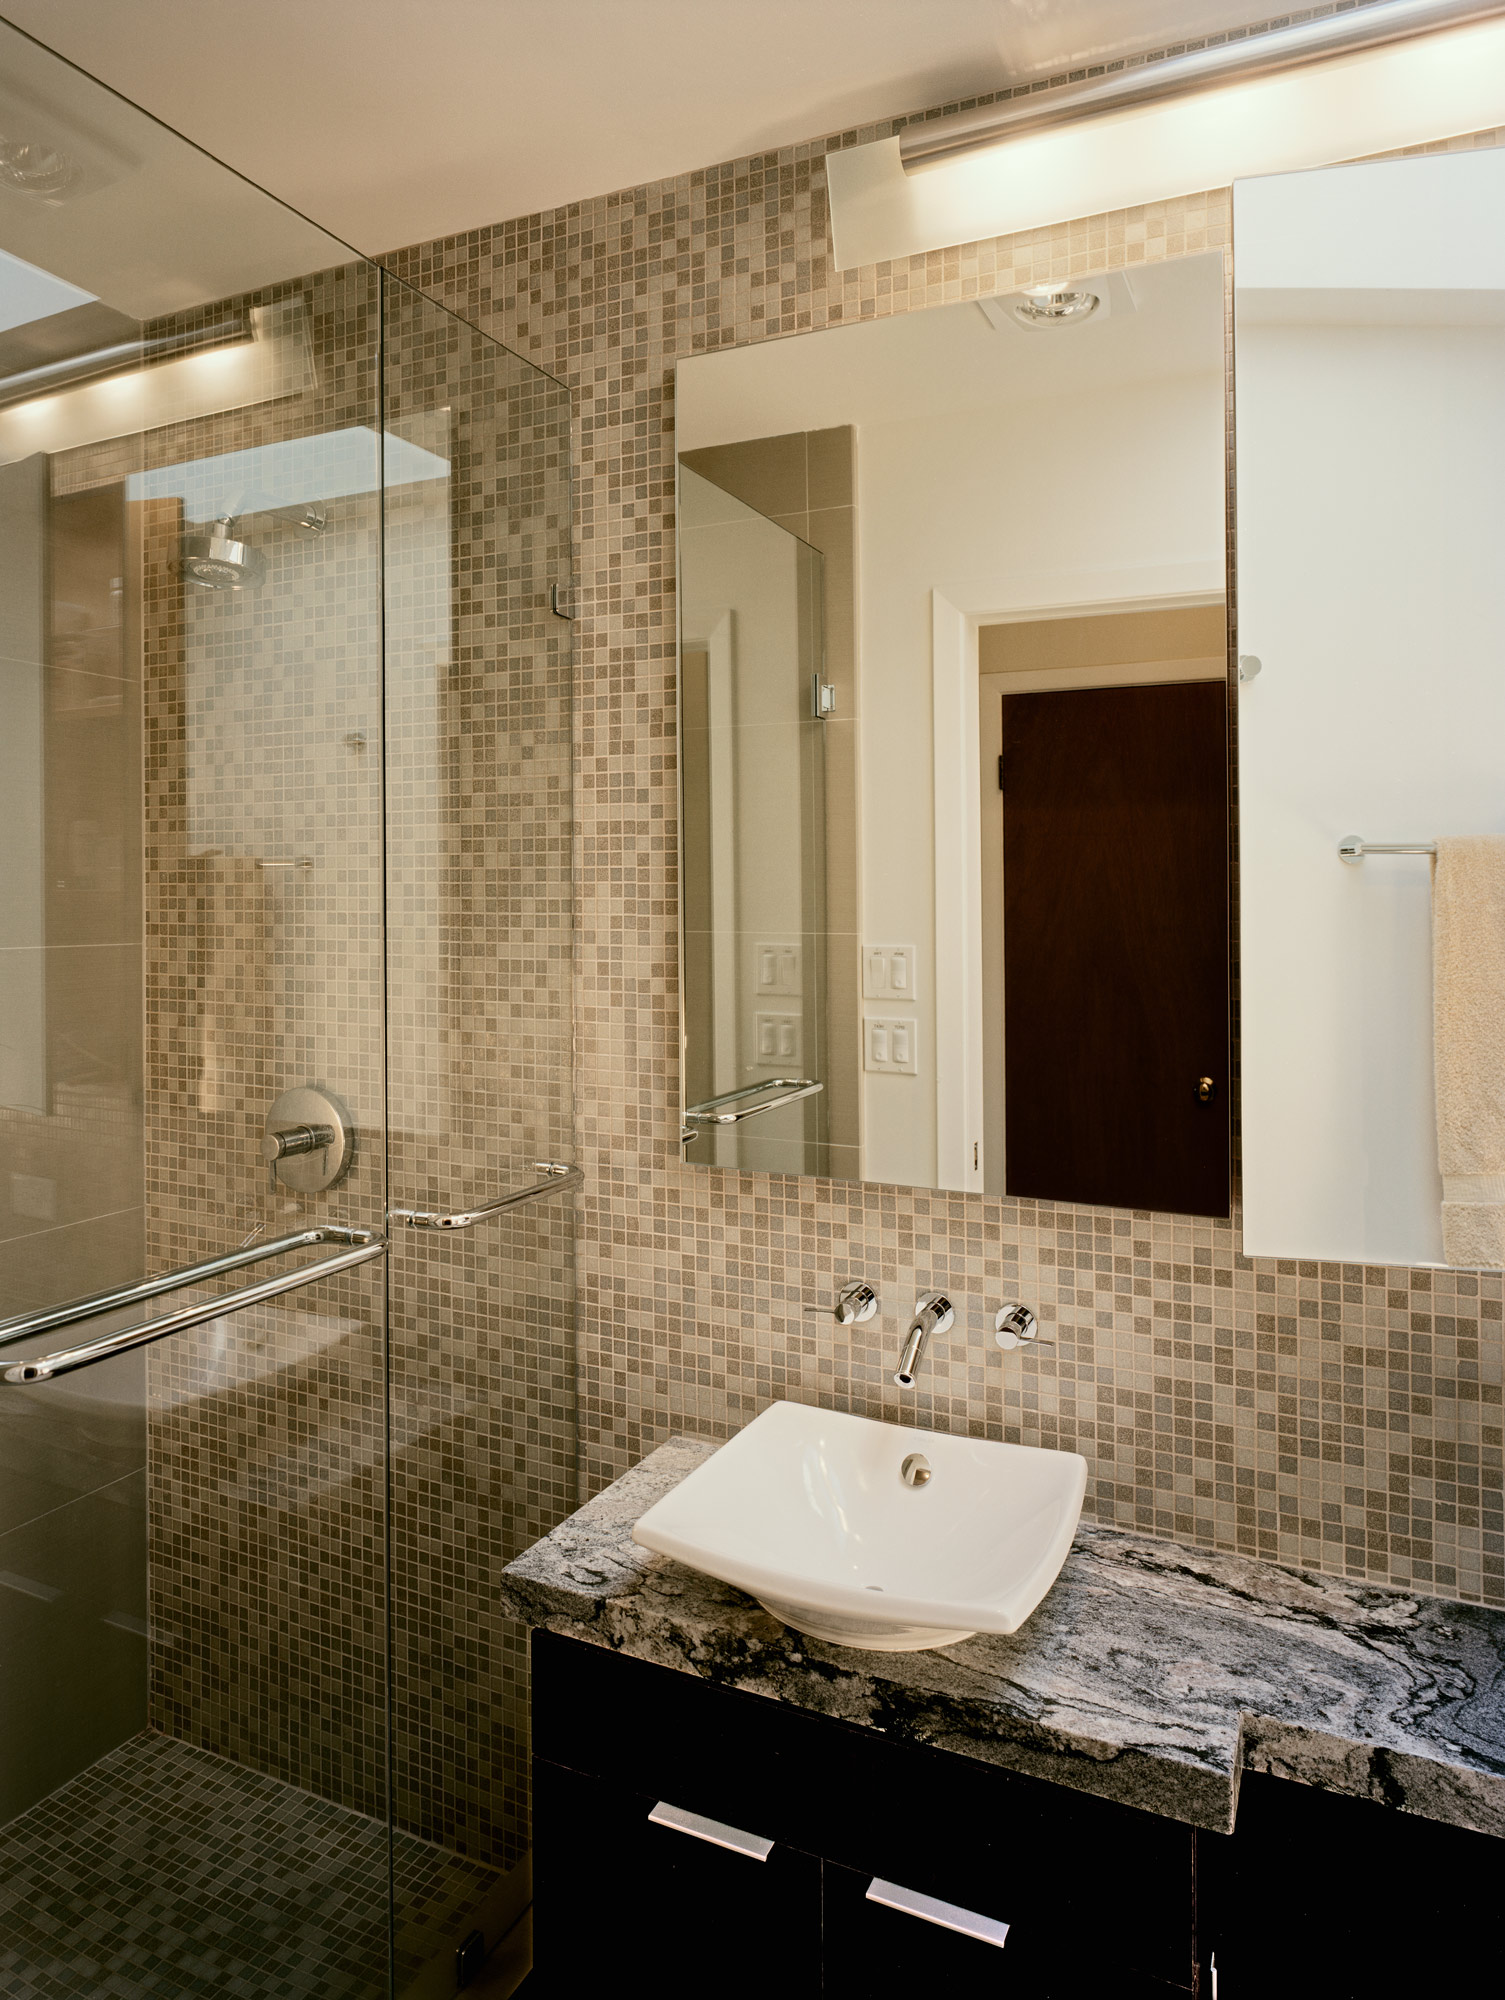 Kaplan-Architects-San Francisco-guest-bath-remodel-2.jpg